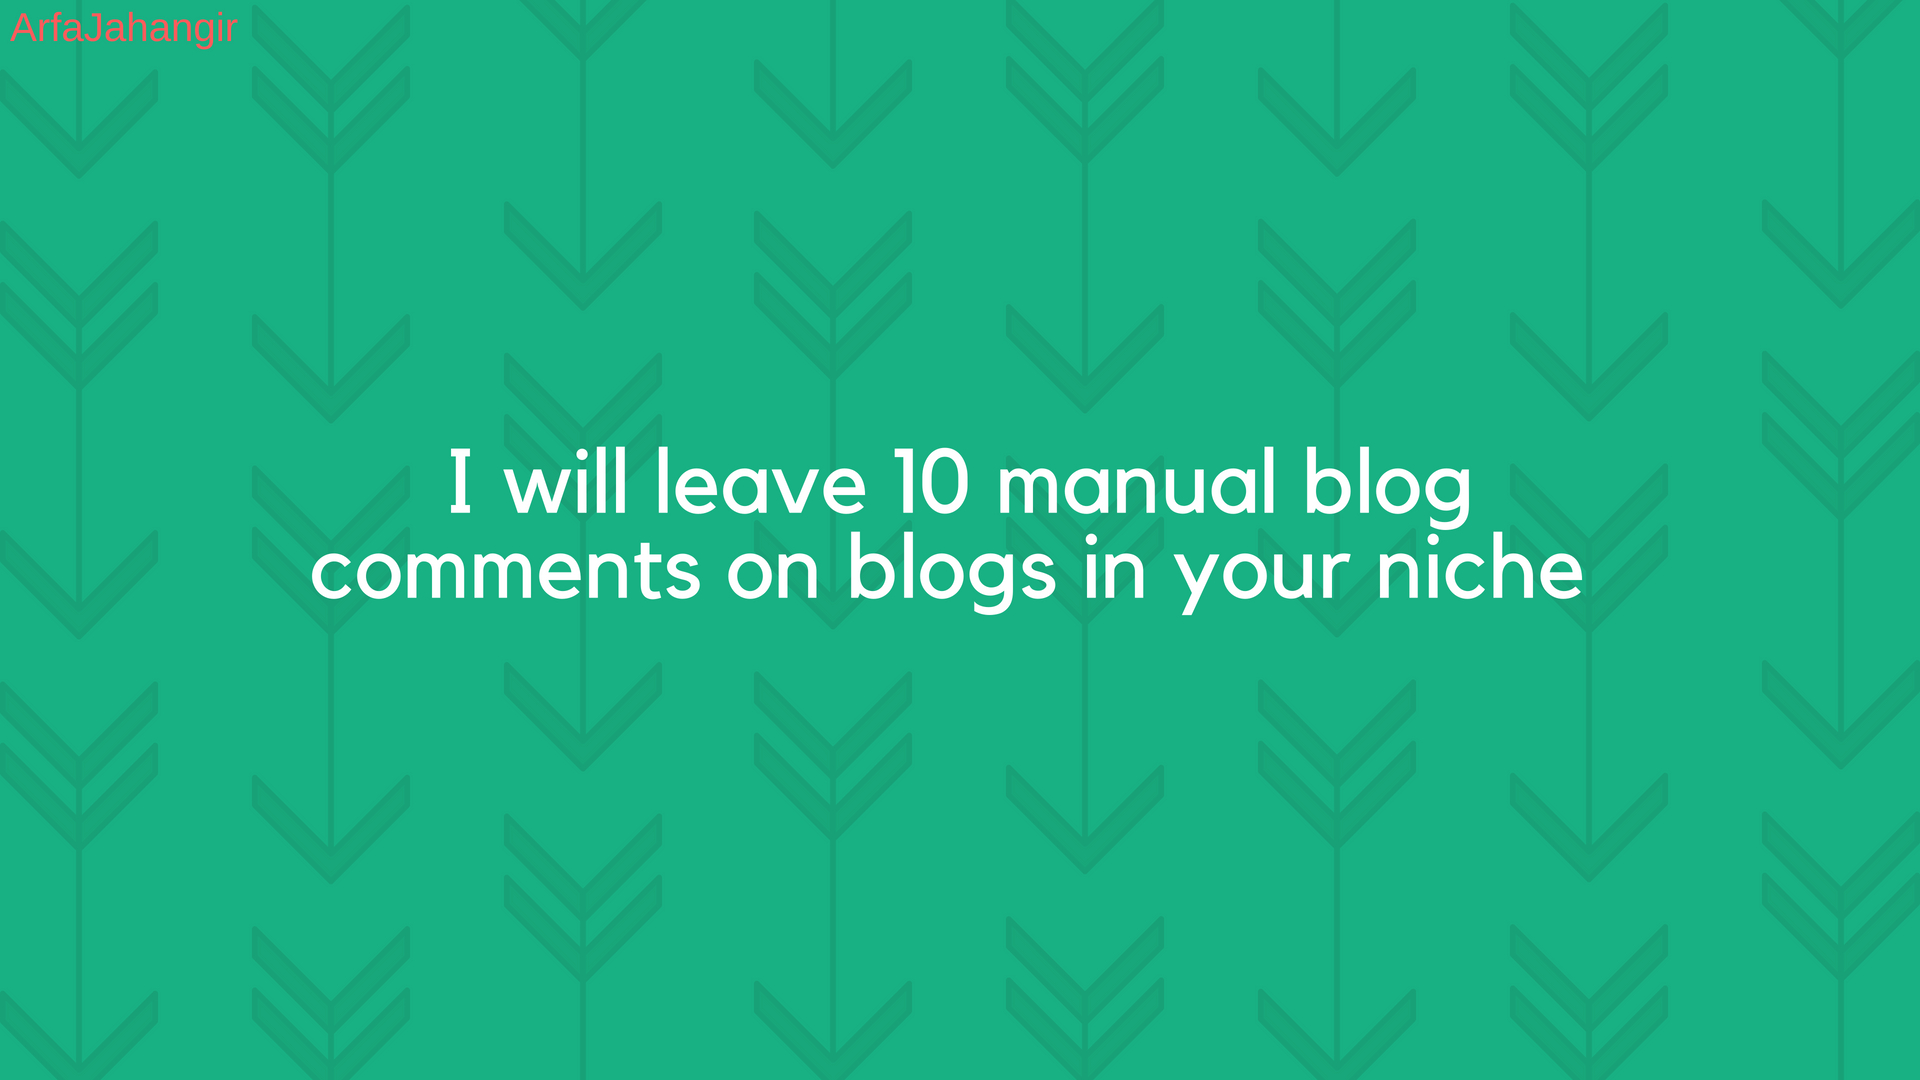 leave 15 manual blog comments on blogs in your niche